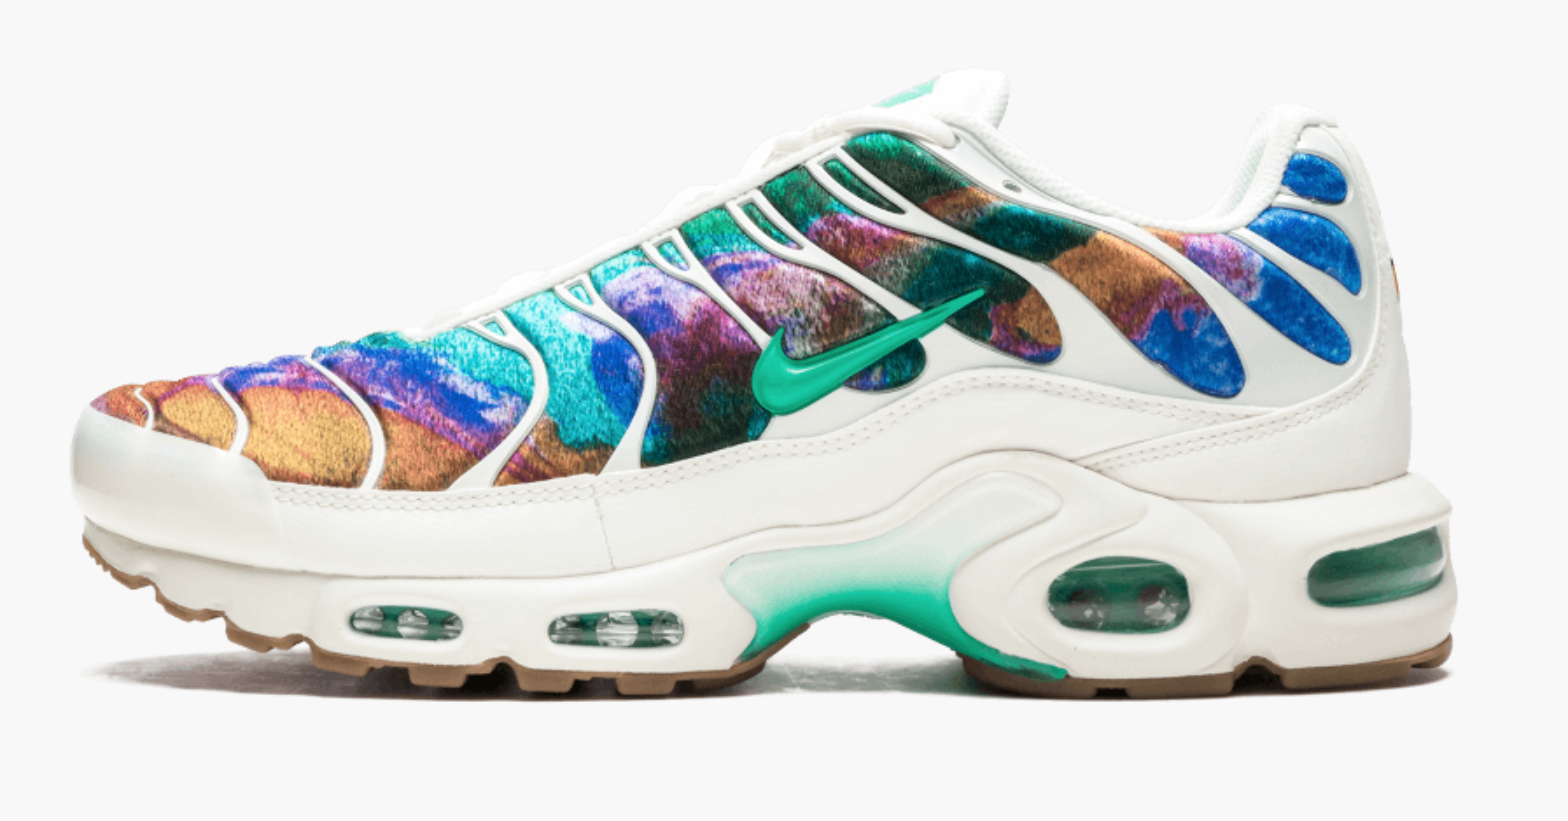 Nike Air Max Plus Print | Air max sneakers, Air max plus